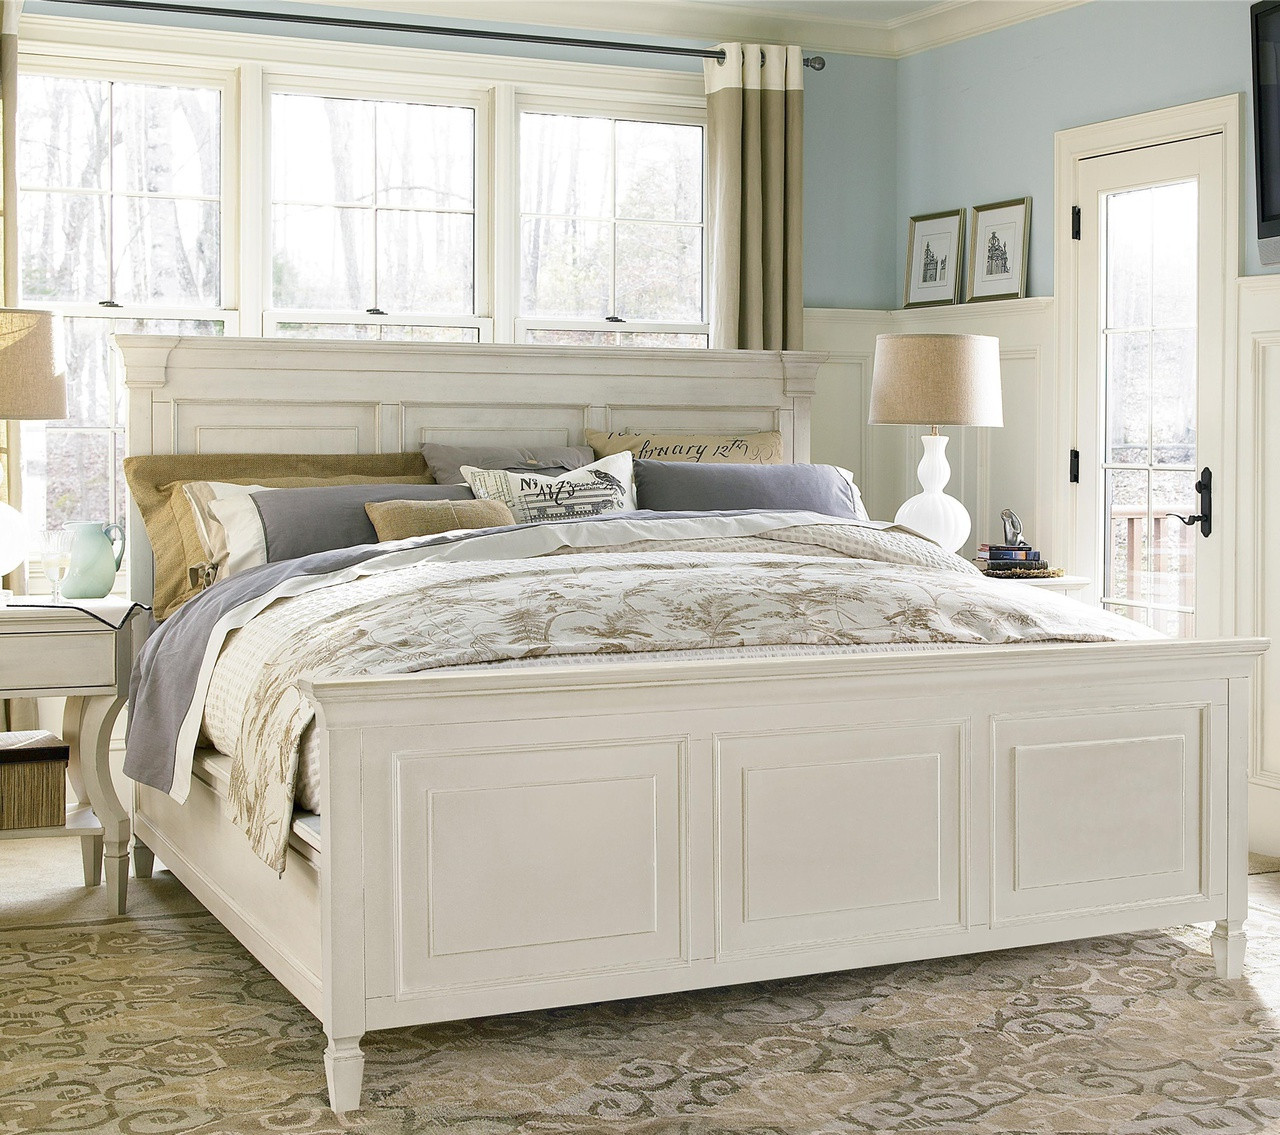 white queen size bed frame. Country-Chic White Queen Size Bed Frame Zin Home